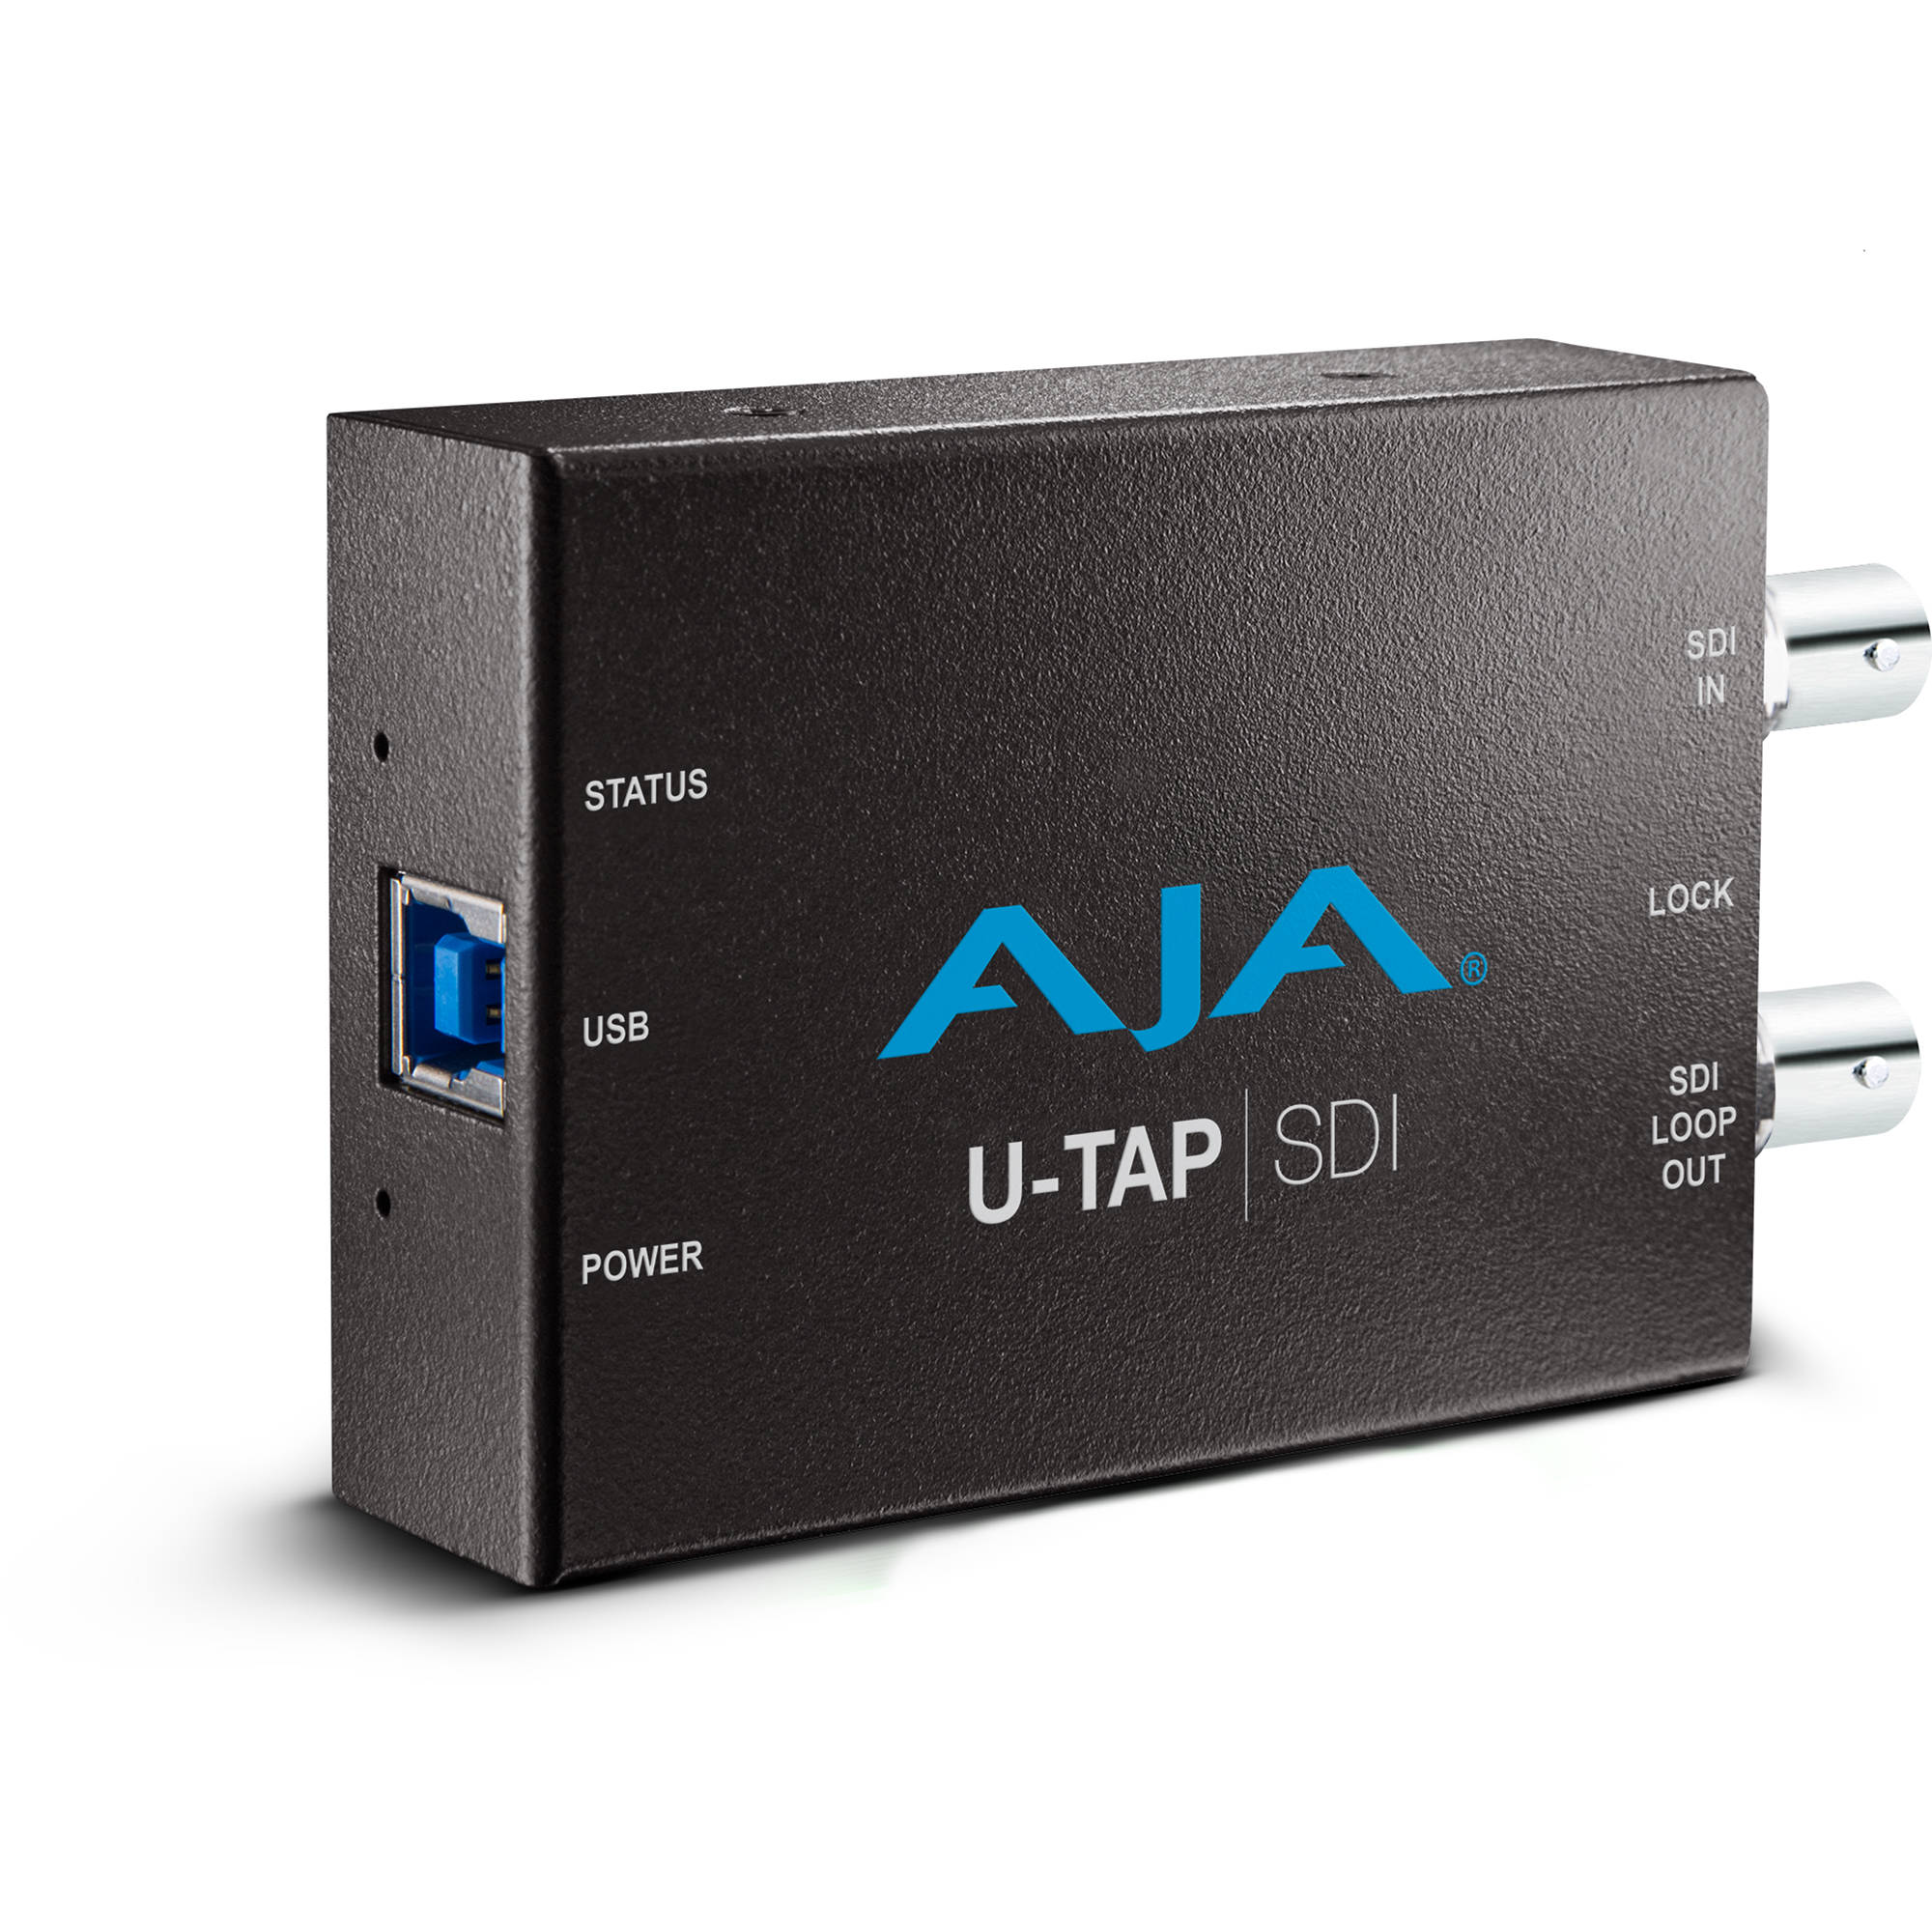 AJA U-TAP USB 3.1 Gen 1 Powered SDI Capture Device U-TAP-SDI B&H